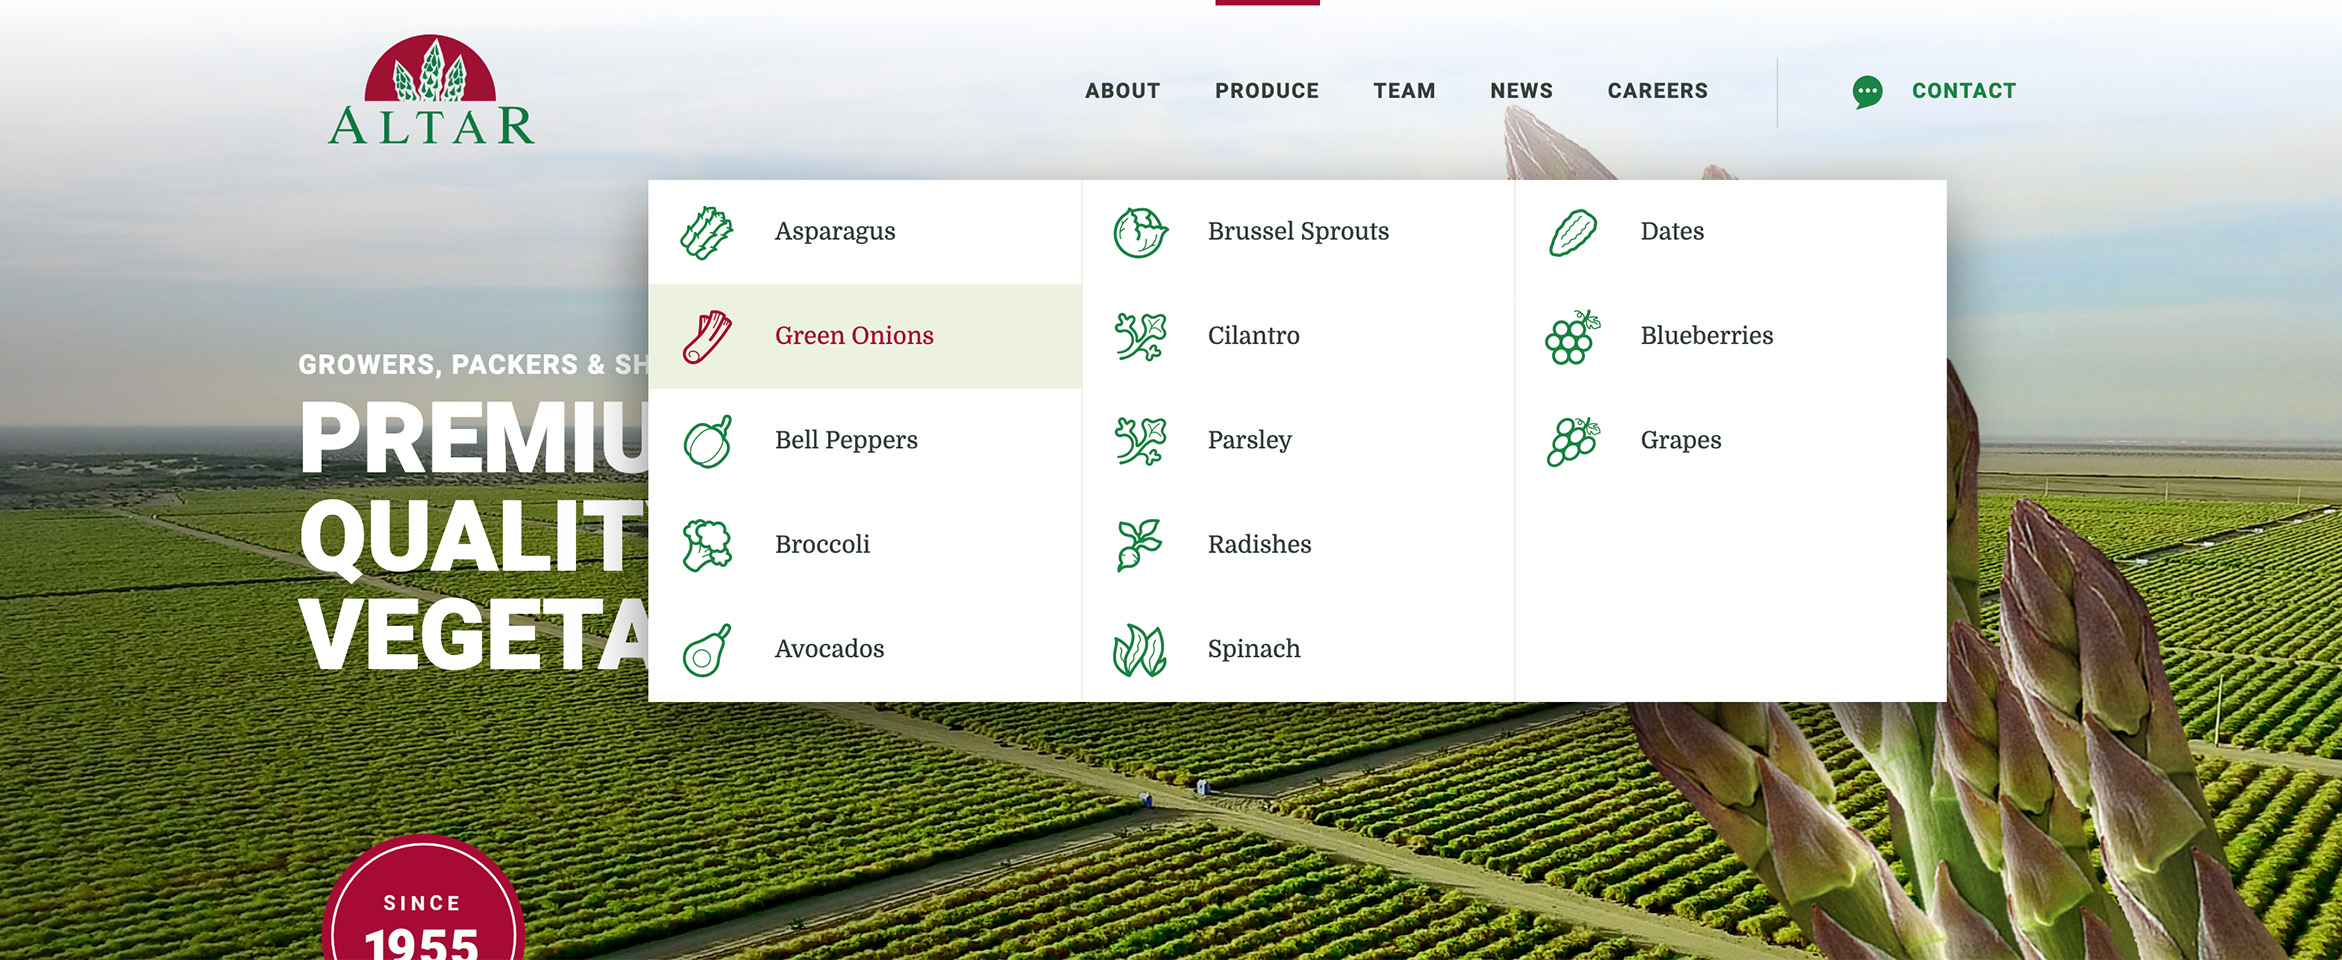 Harvesting a Fresh New Site for One of the World's Top Veggie Producers Build Image-0